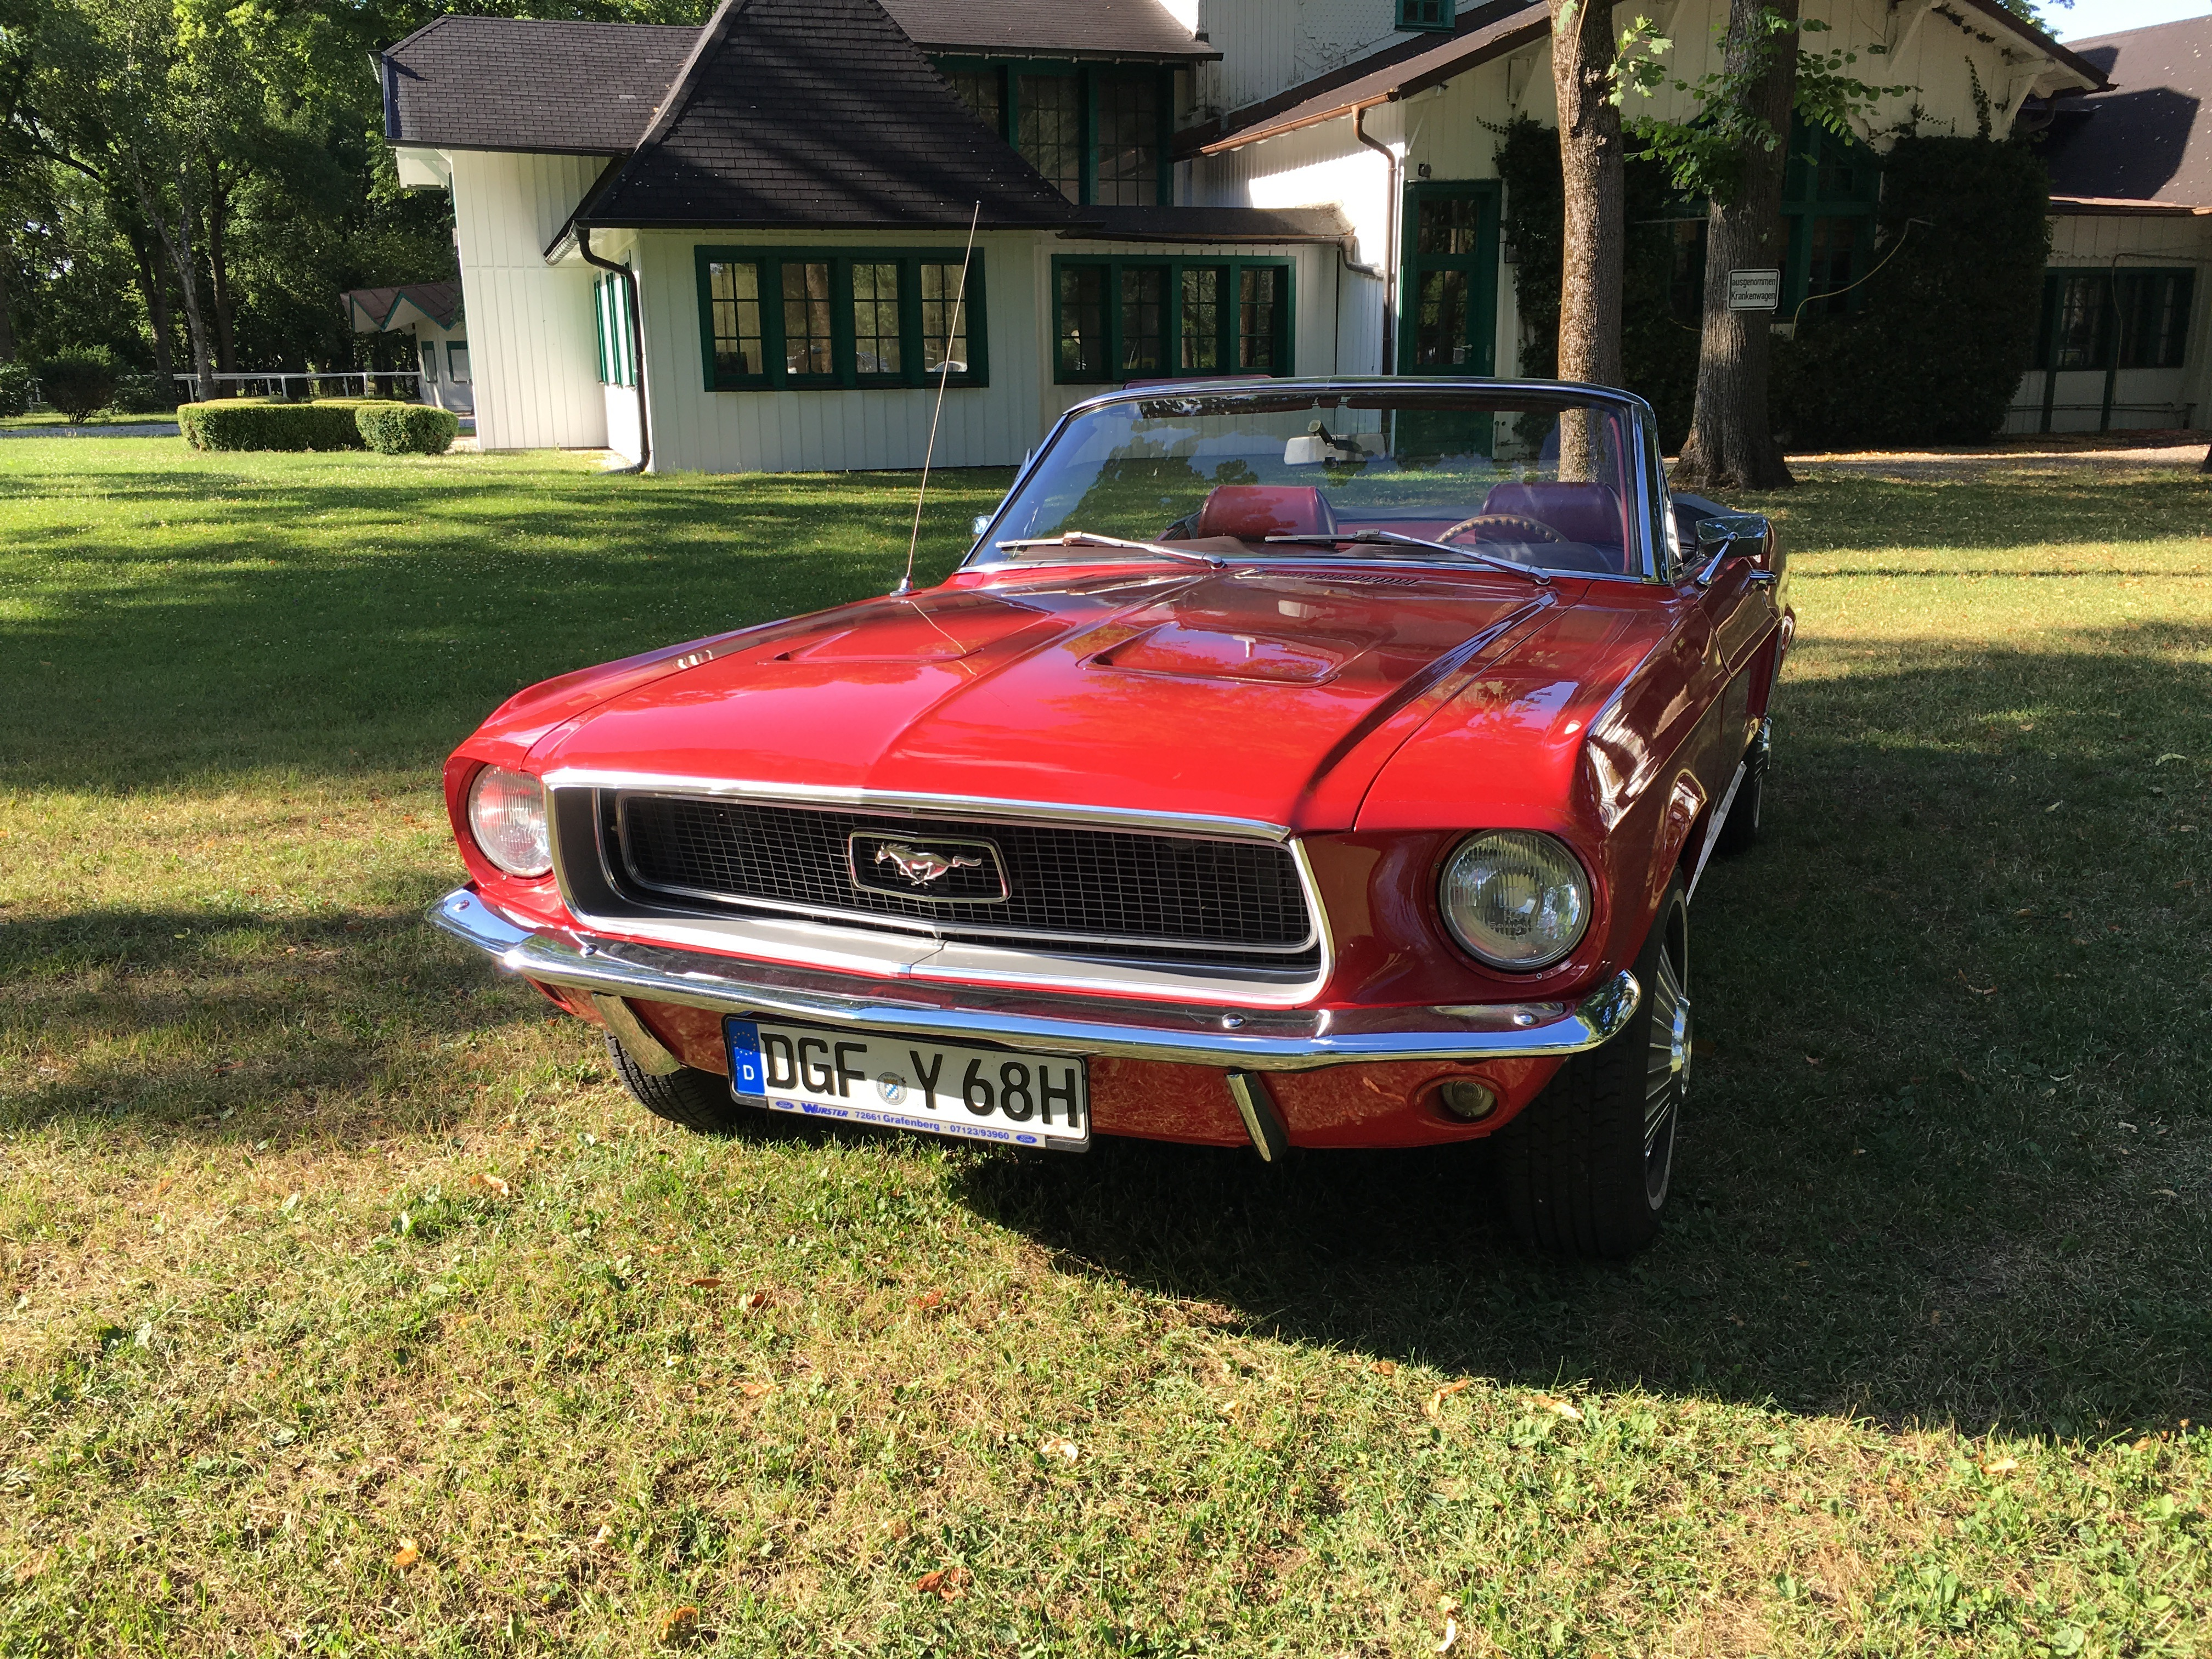 Active Oldtimer Ford Mustang mieten Au - 13